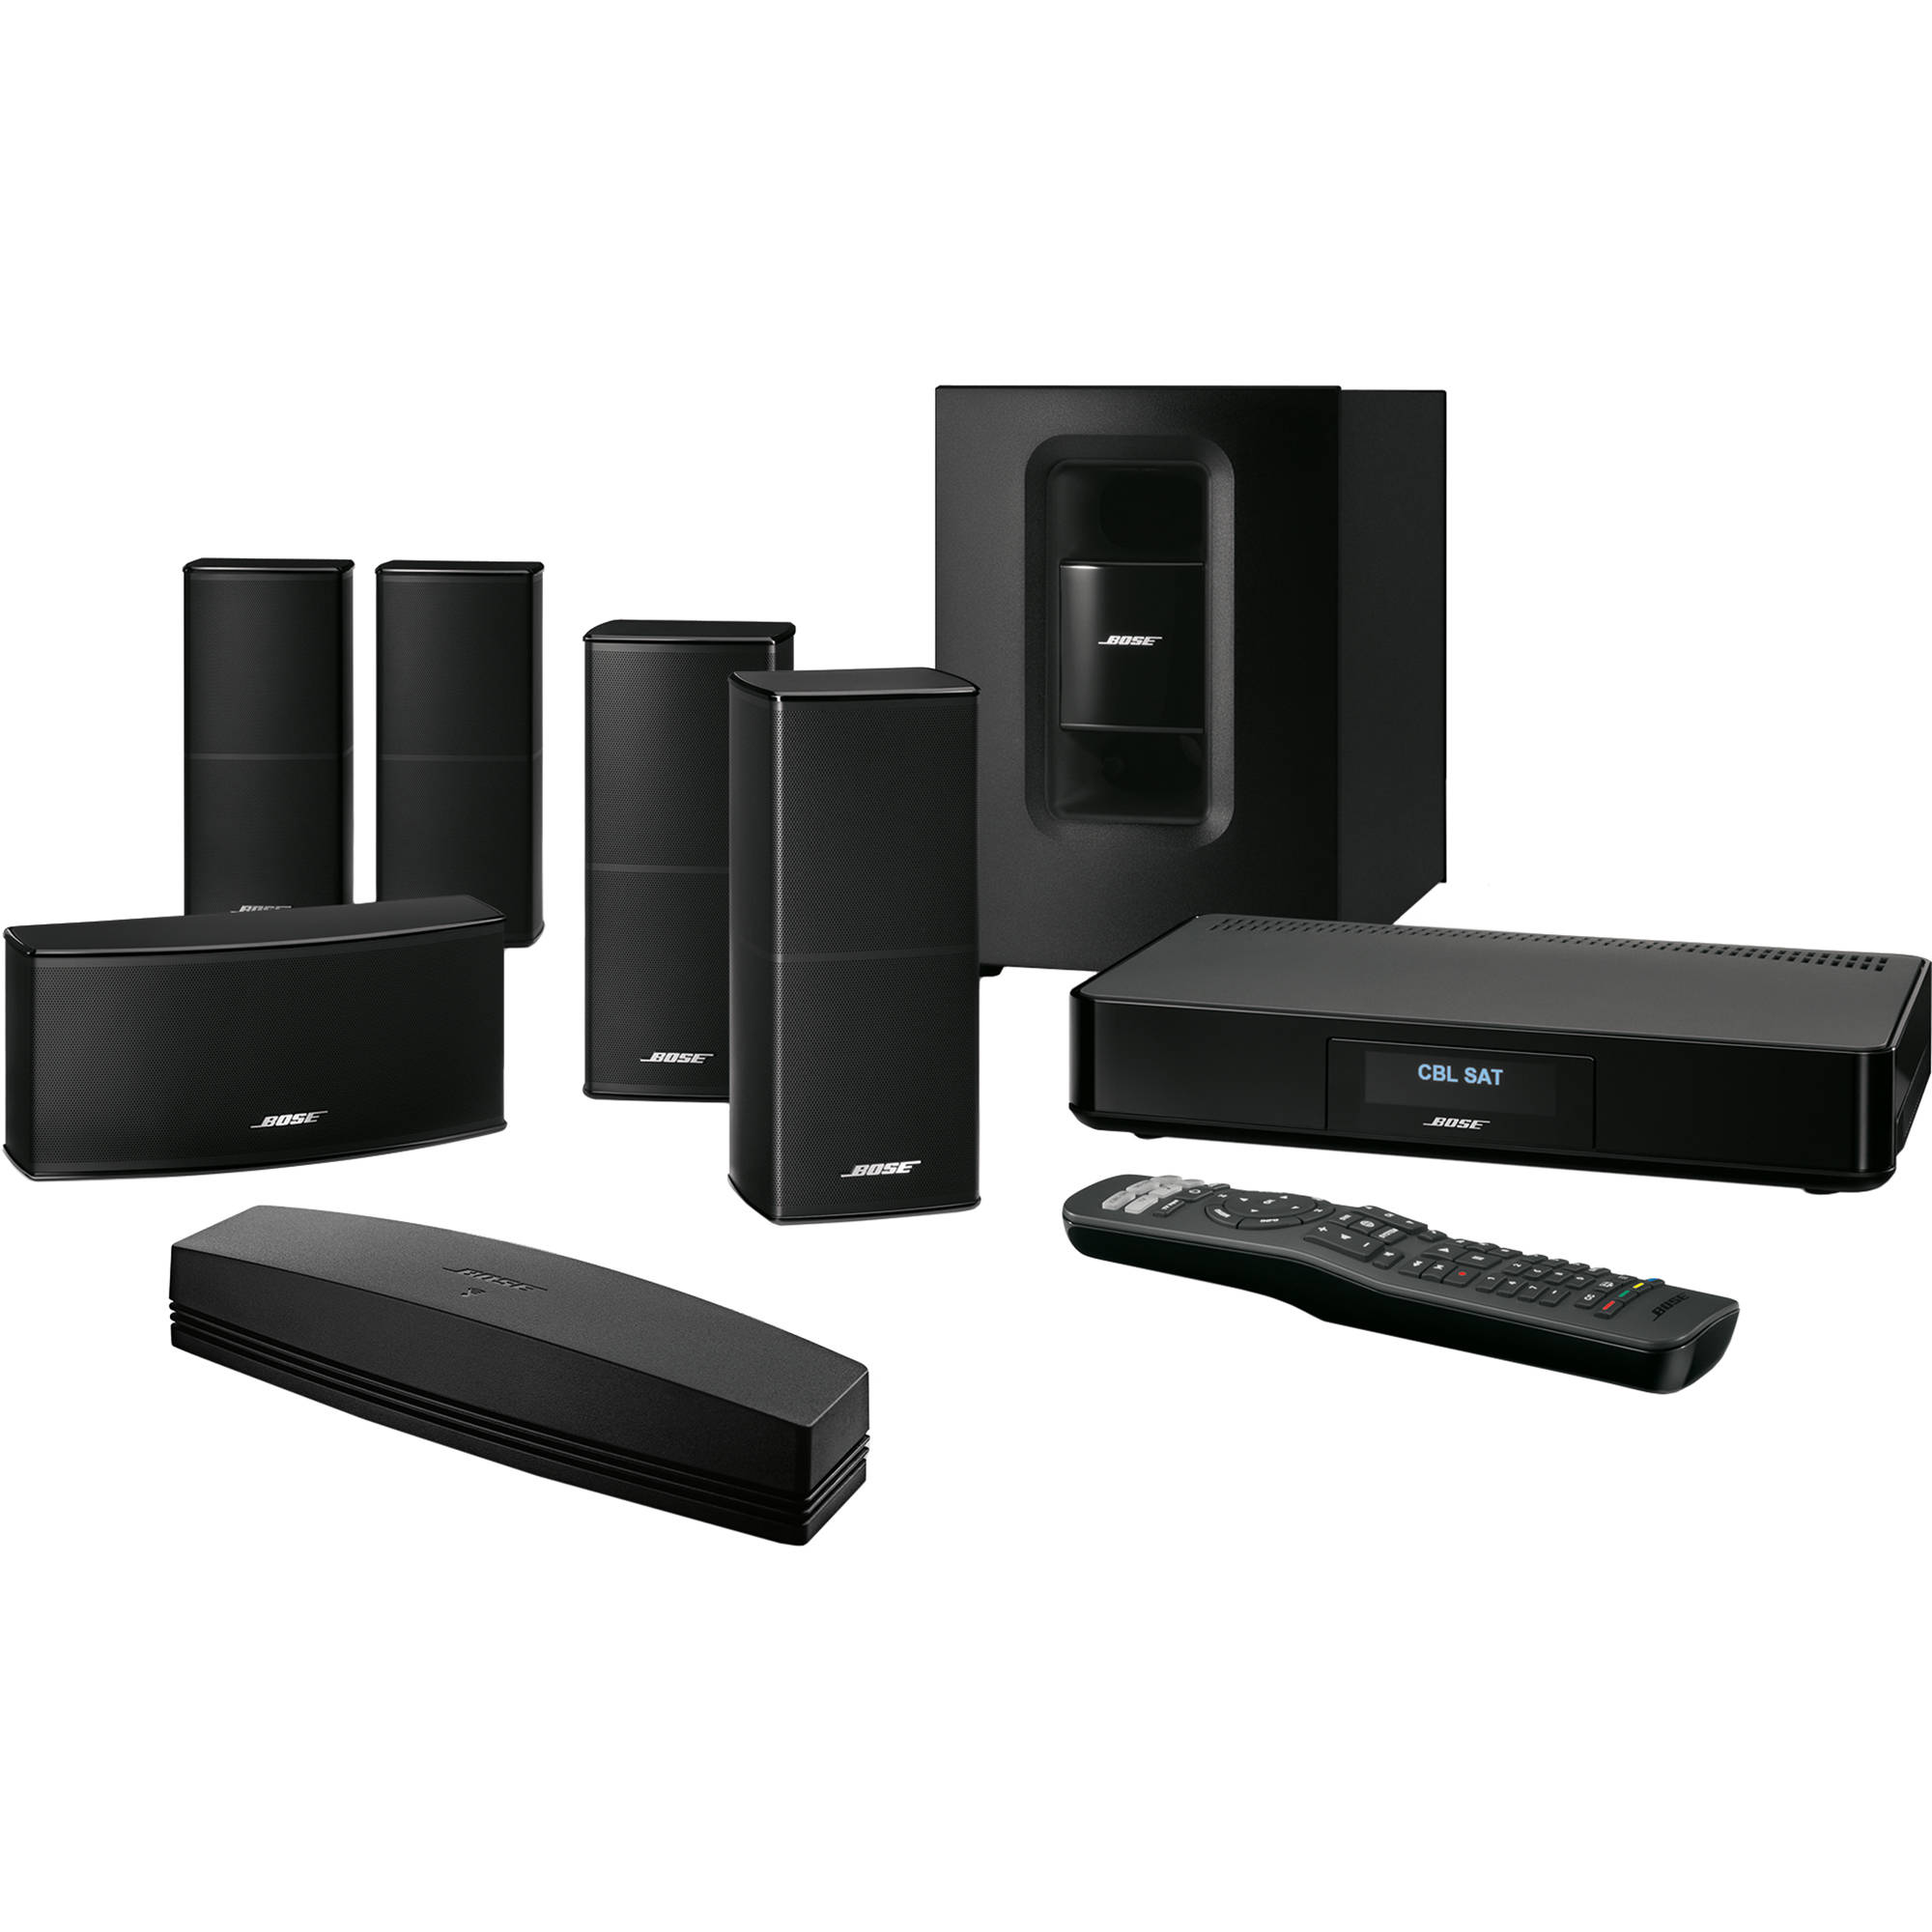 Bose soundtouch 130 home theater system black 738484 1100 b amp h - Bose Soundtouch 520 Home Theater System Black 738377 1100 B Amph 2000x2000